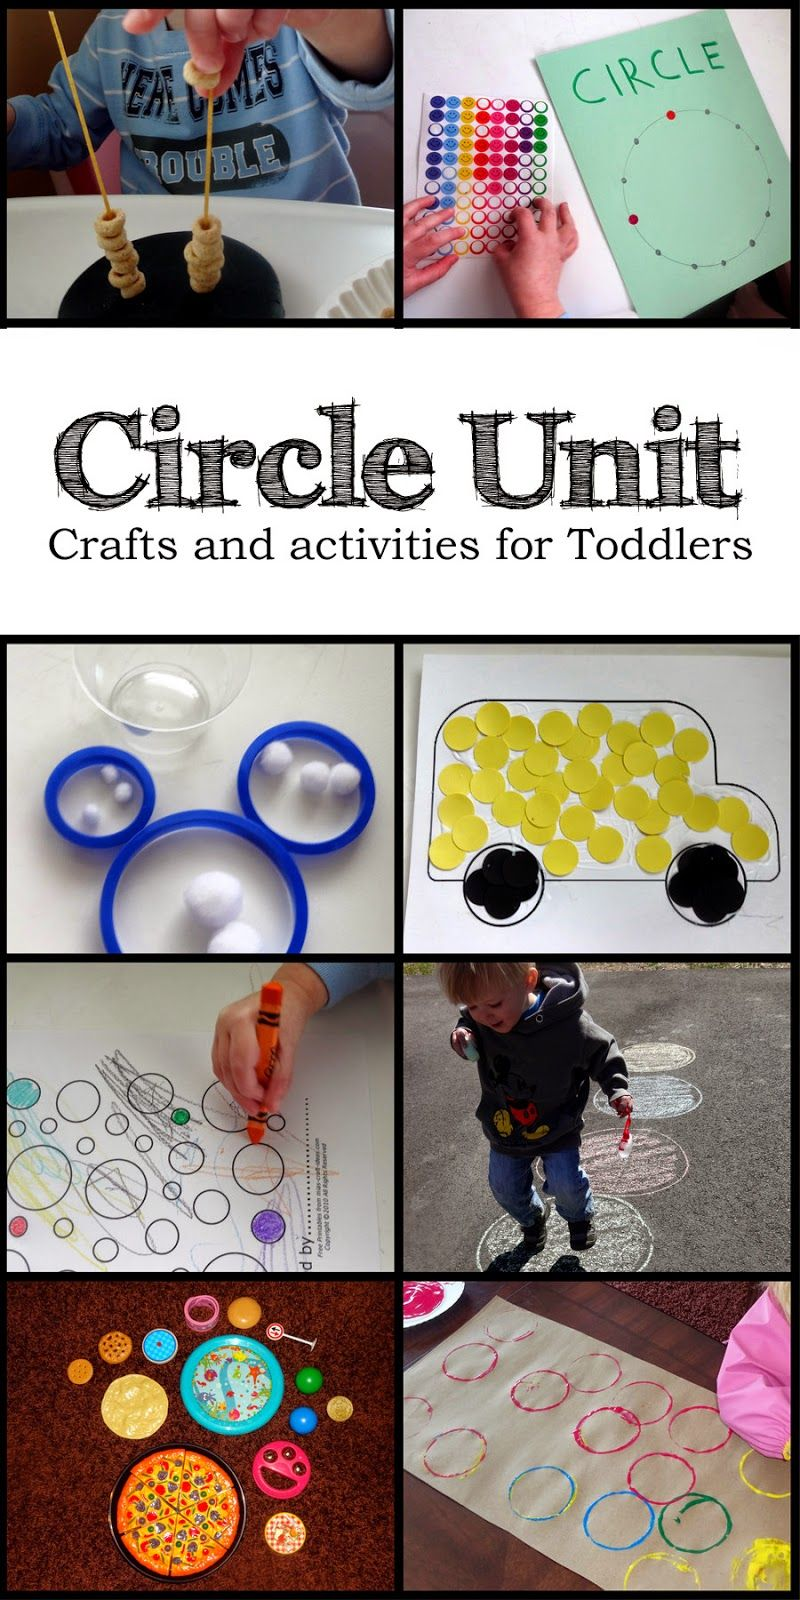 Circles Crafts And Activities For Toddlers Learning Their Shapes Tessa Facial Tissue Reffil Looney Tunes